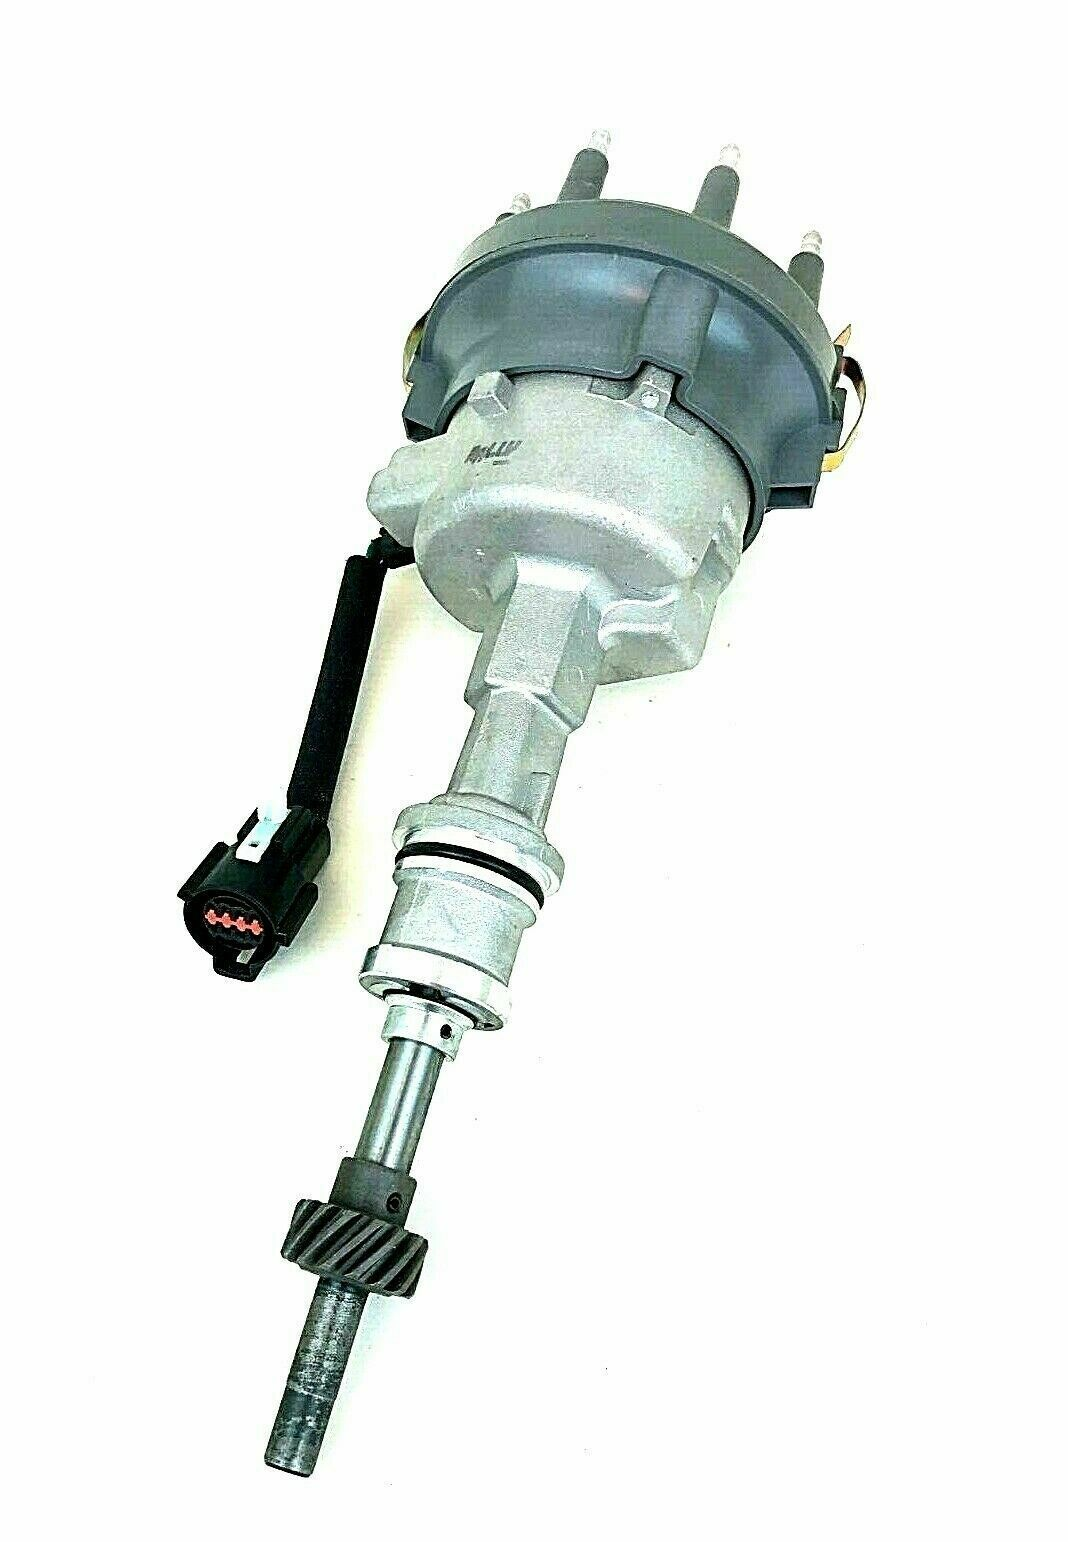 78-96 220 Distributor Ford Fuel Injection 302 V8 F150 F250 E150 Bronco Mustang